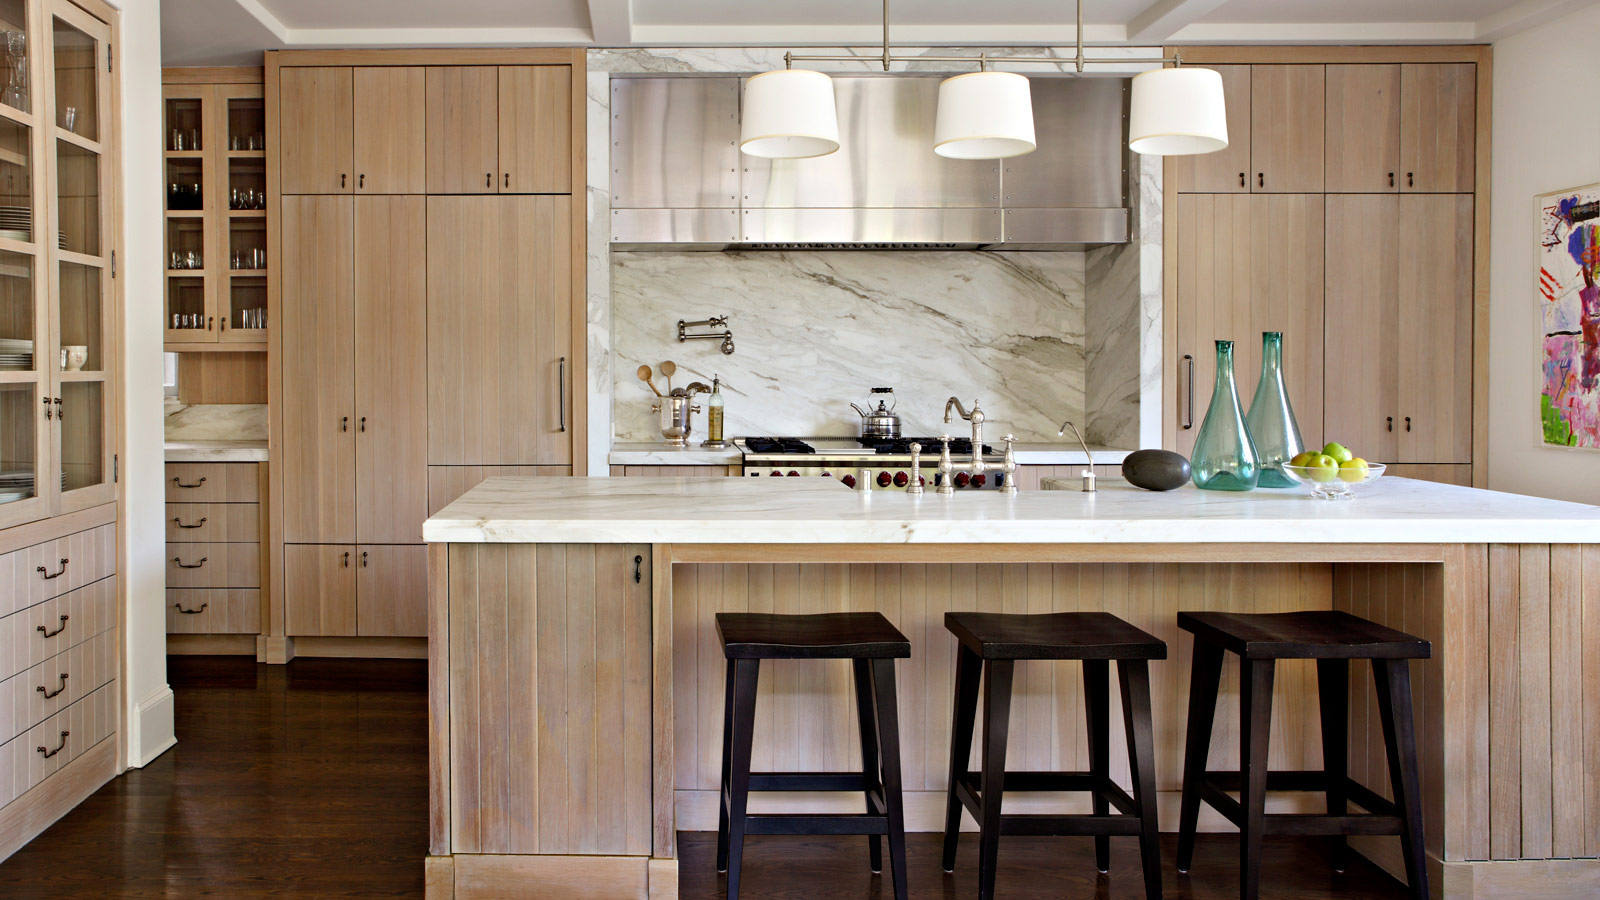 Anyeongchinguyo interior design for Kitchen island cabinets